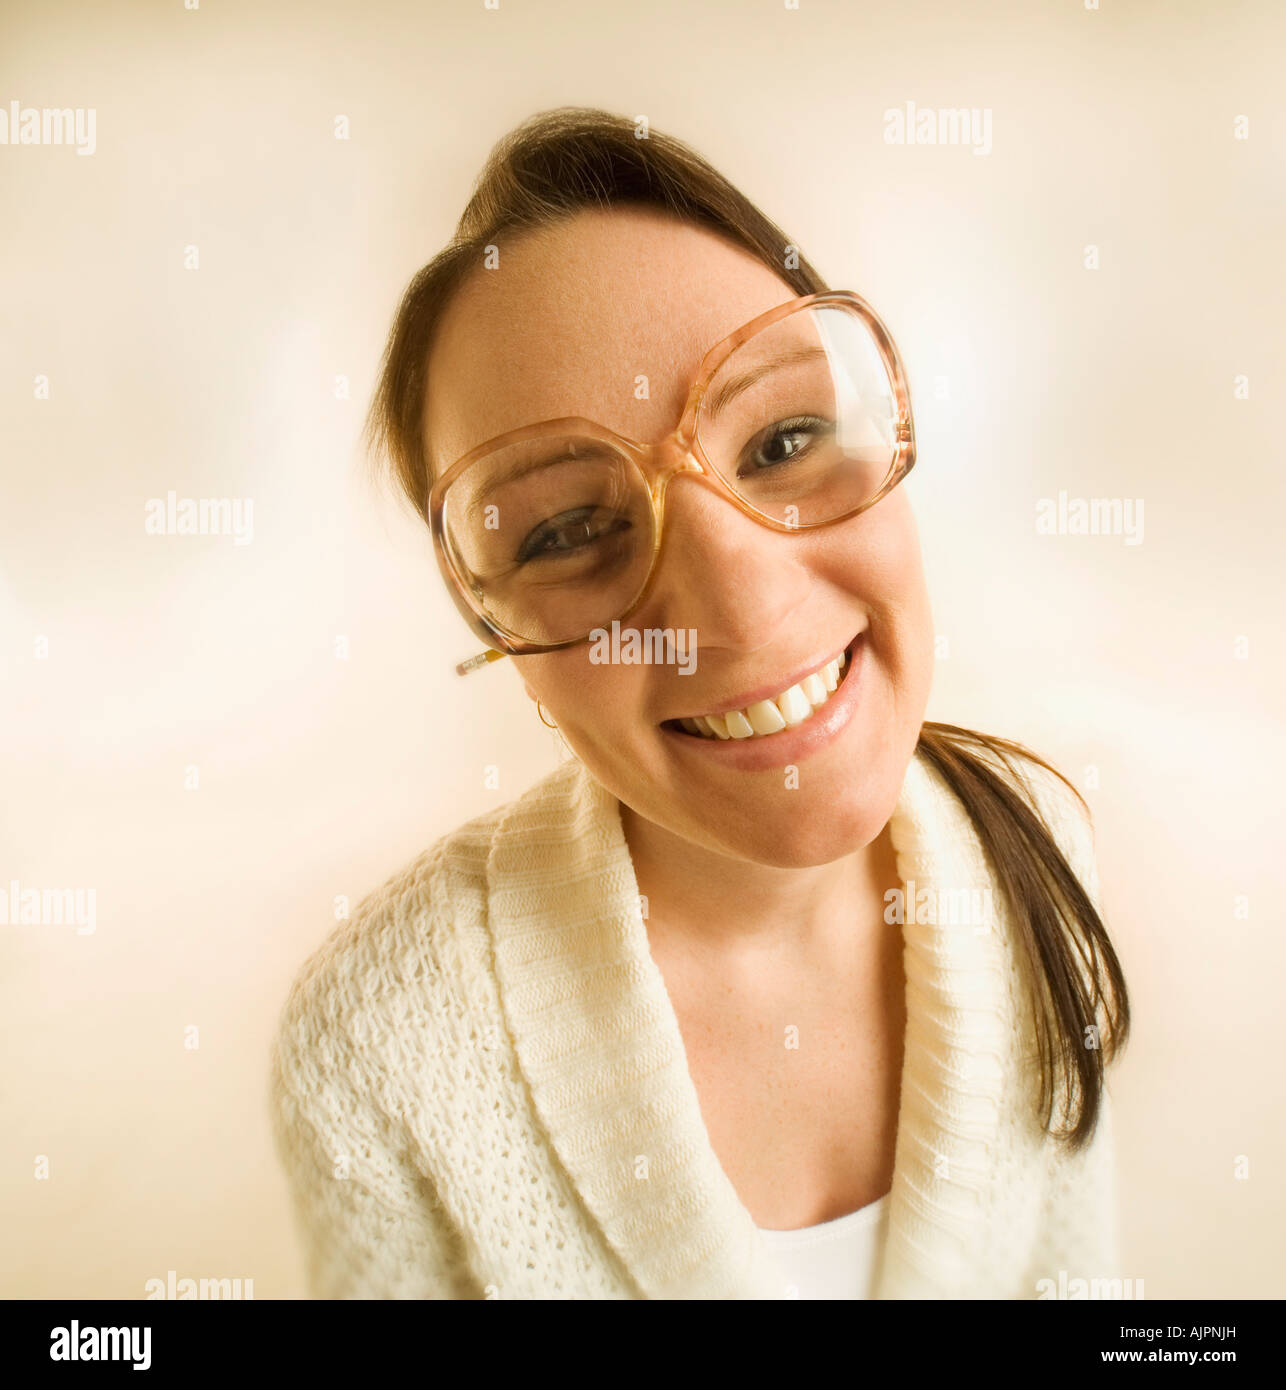 Young woman smiling and wearing eyeglasses - Stock Image